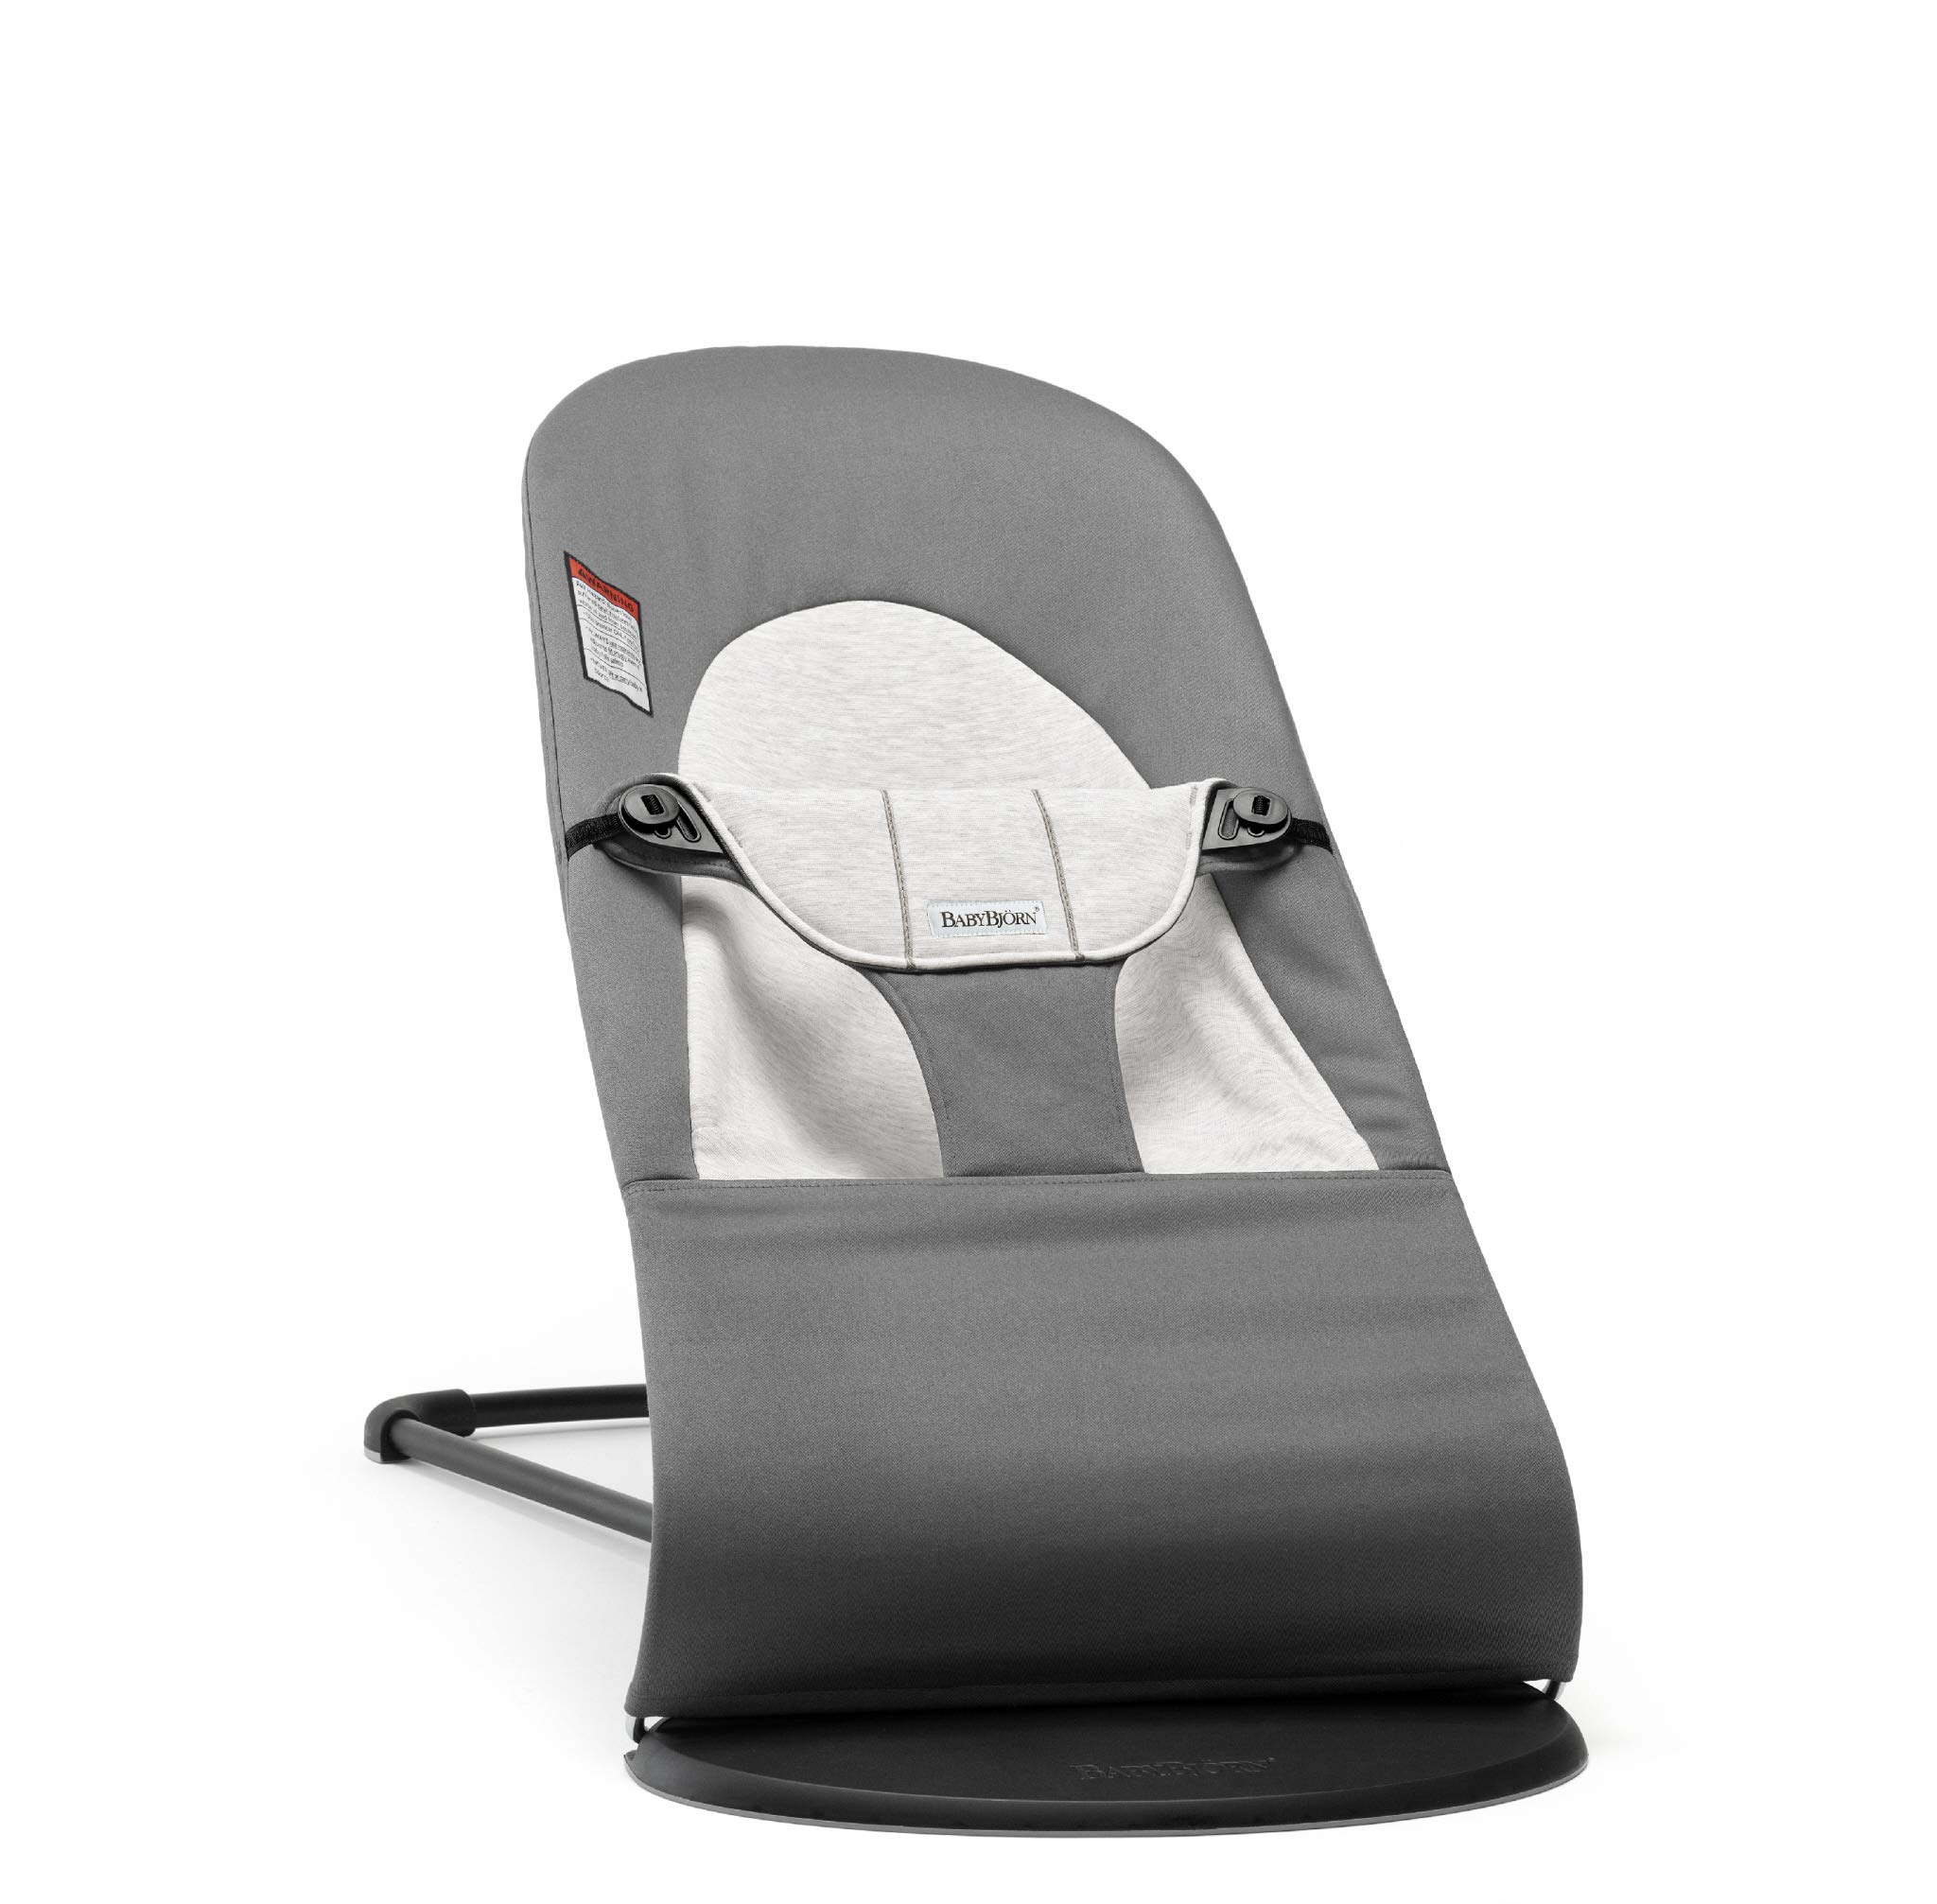 85a773e1f6f6 Amazon.com   BABYBJORN Bouncer Balance Soft - Dark Gray Gray